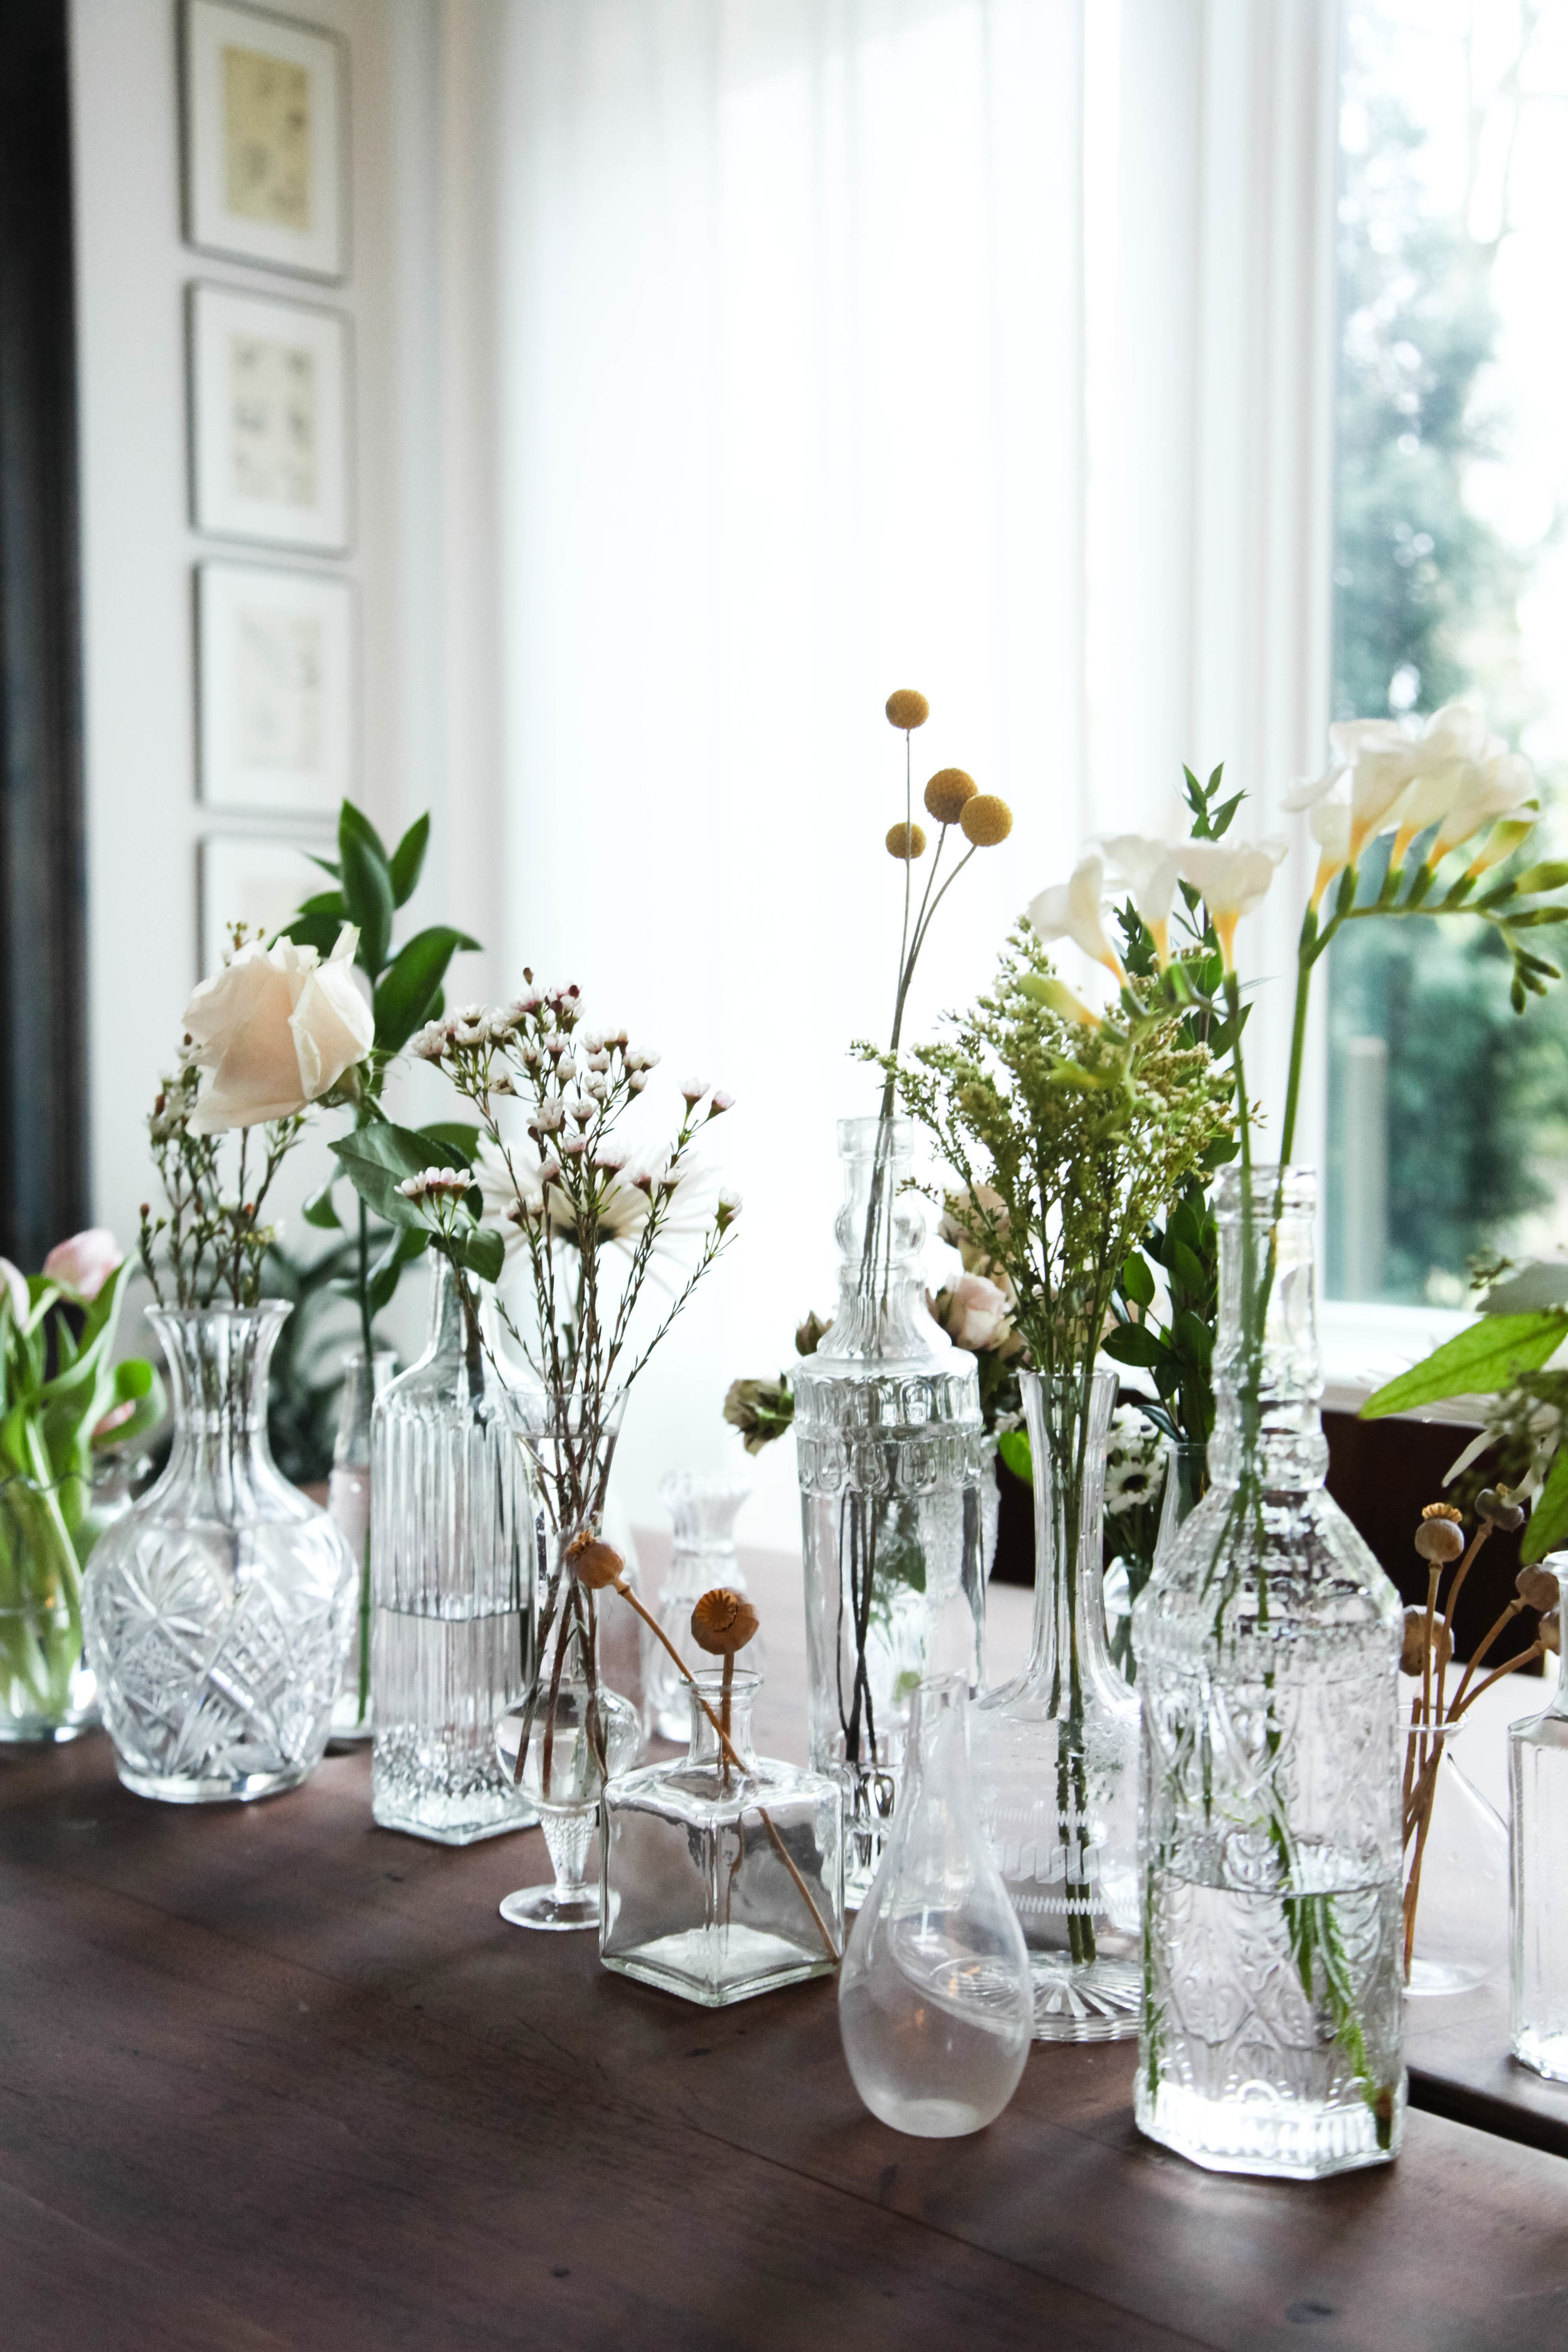 Style tip: Display collection of glass vases and bottles on a dining table. Place flowers into them. The natural light reflecting the glass is so pretty!